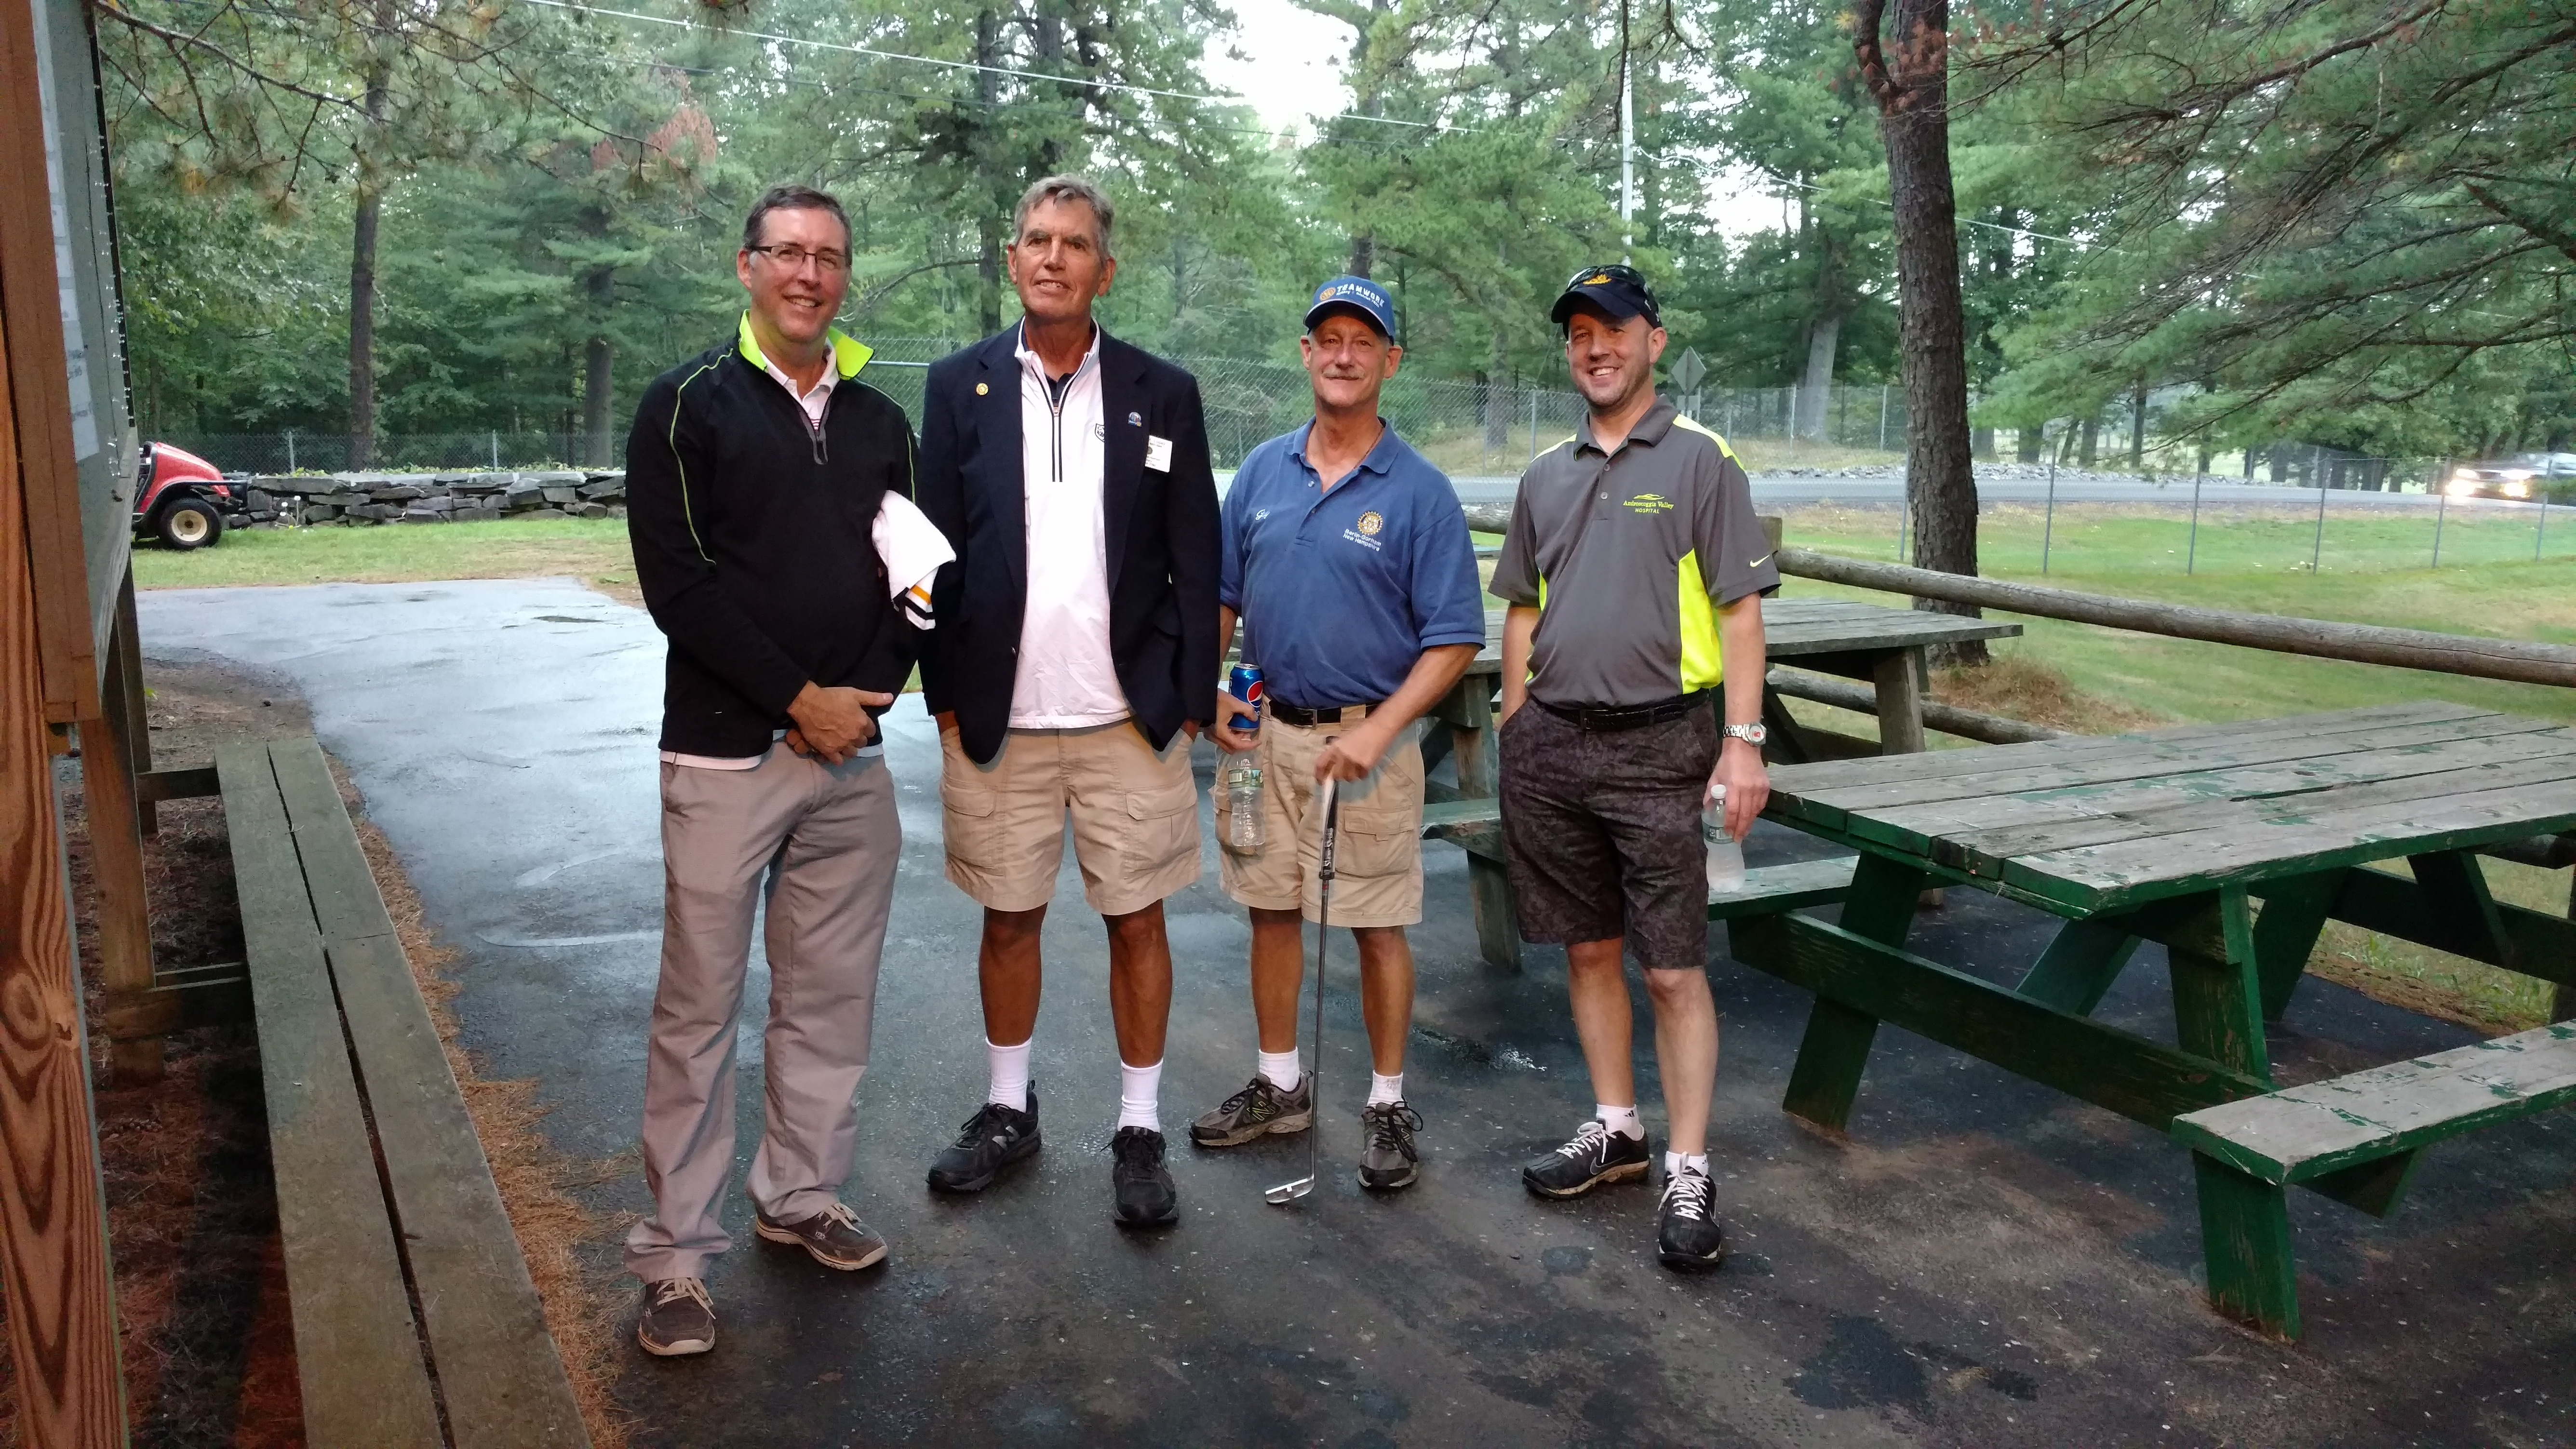 26th Annual Rotary Classic Golf Tournament gallery image #14